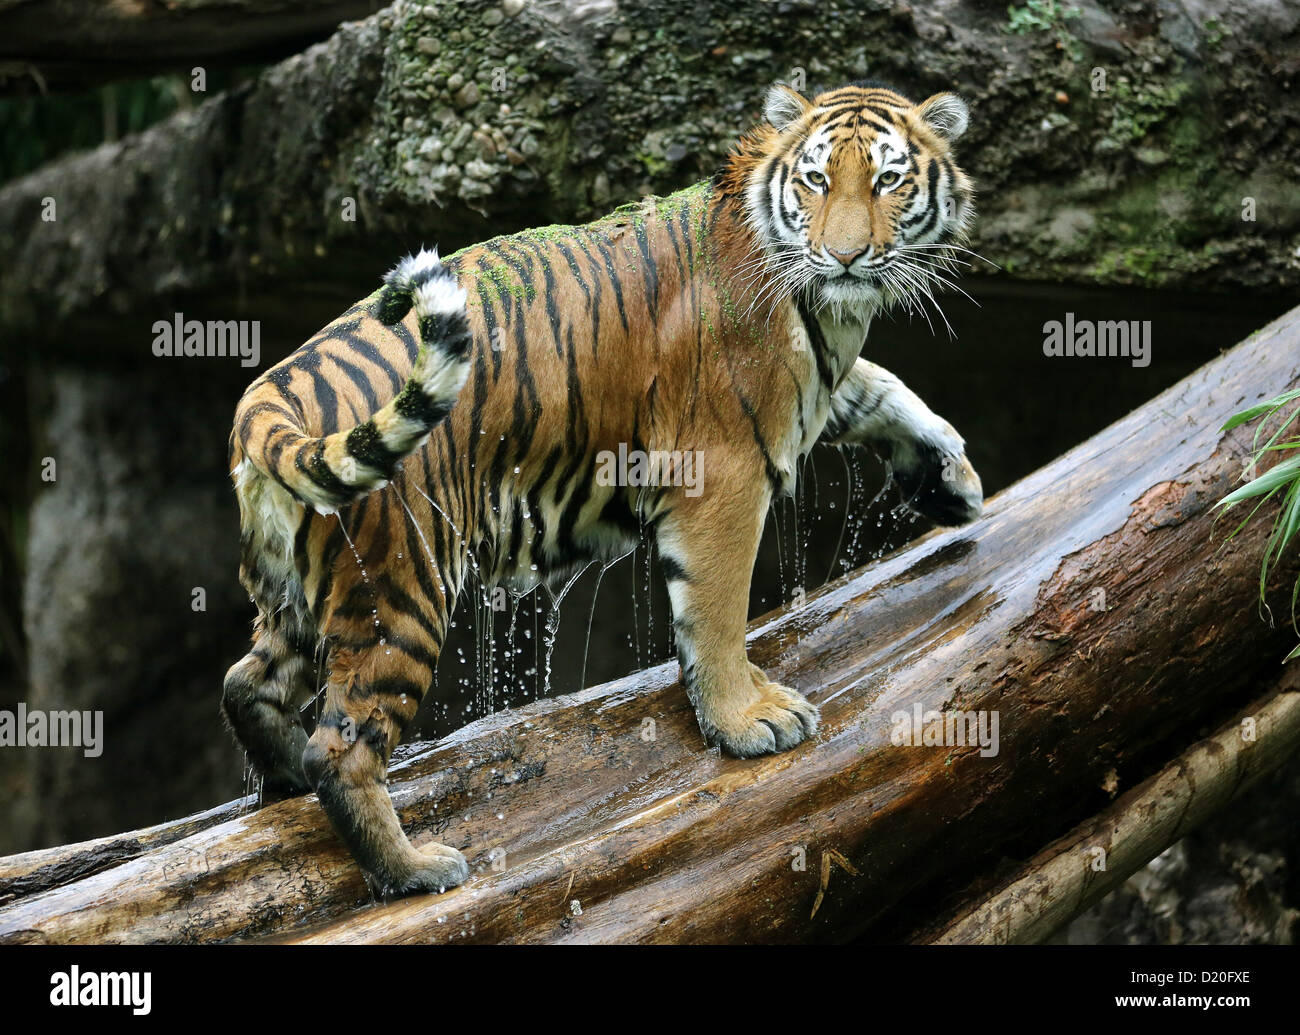 About one and a half year old Siberian tiger Ahimsa is pictured after a swim in the water ditch of his outdoor enclosure - Stock Image